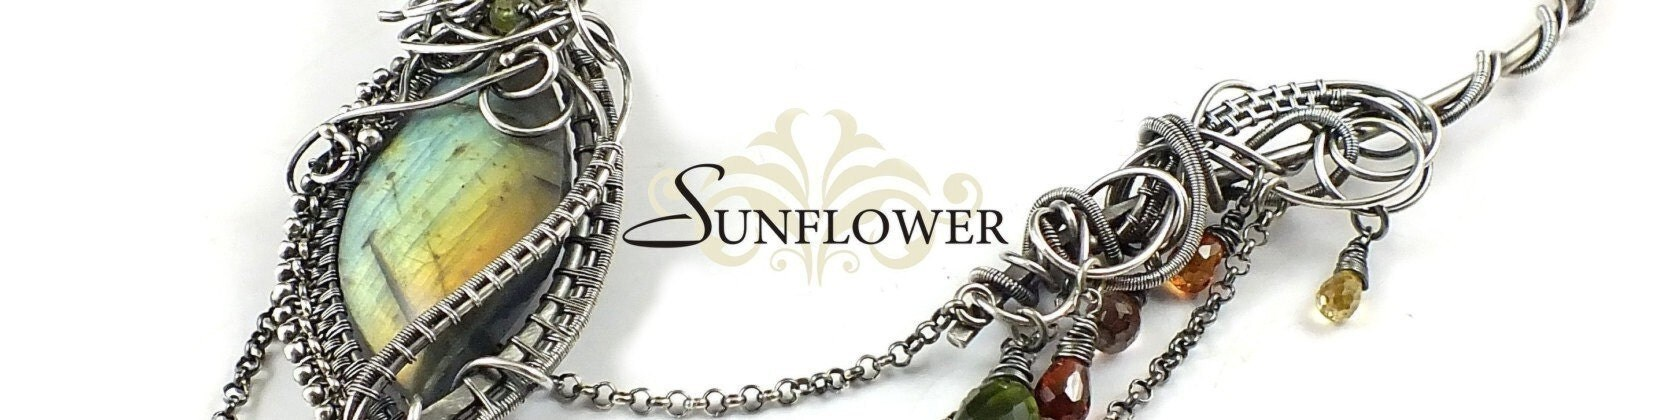 Sunflower silver wire wrapped jewelry by MadeBySunflower on Etsy